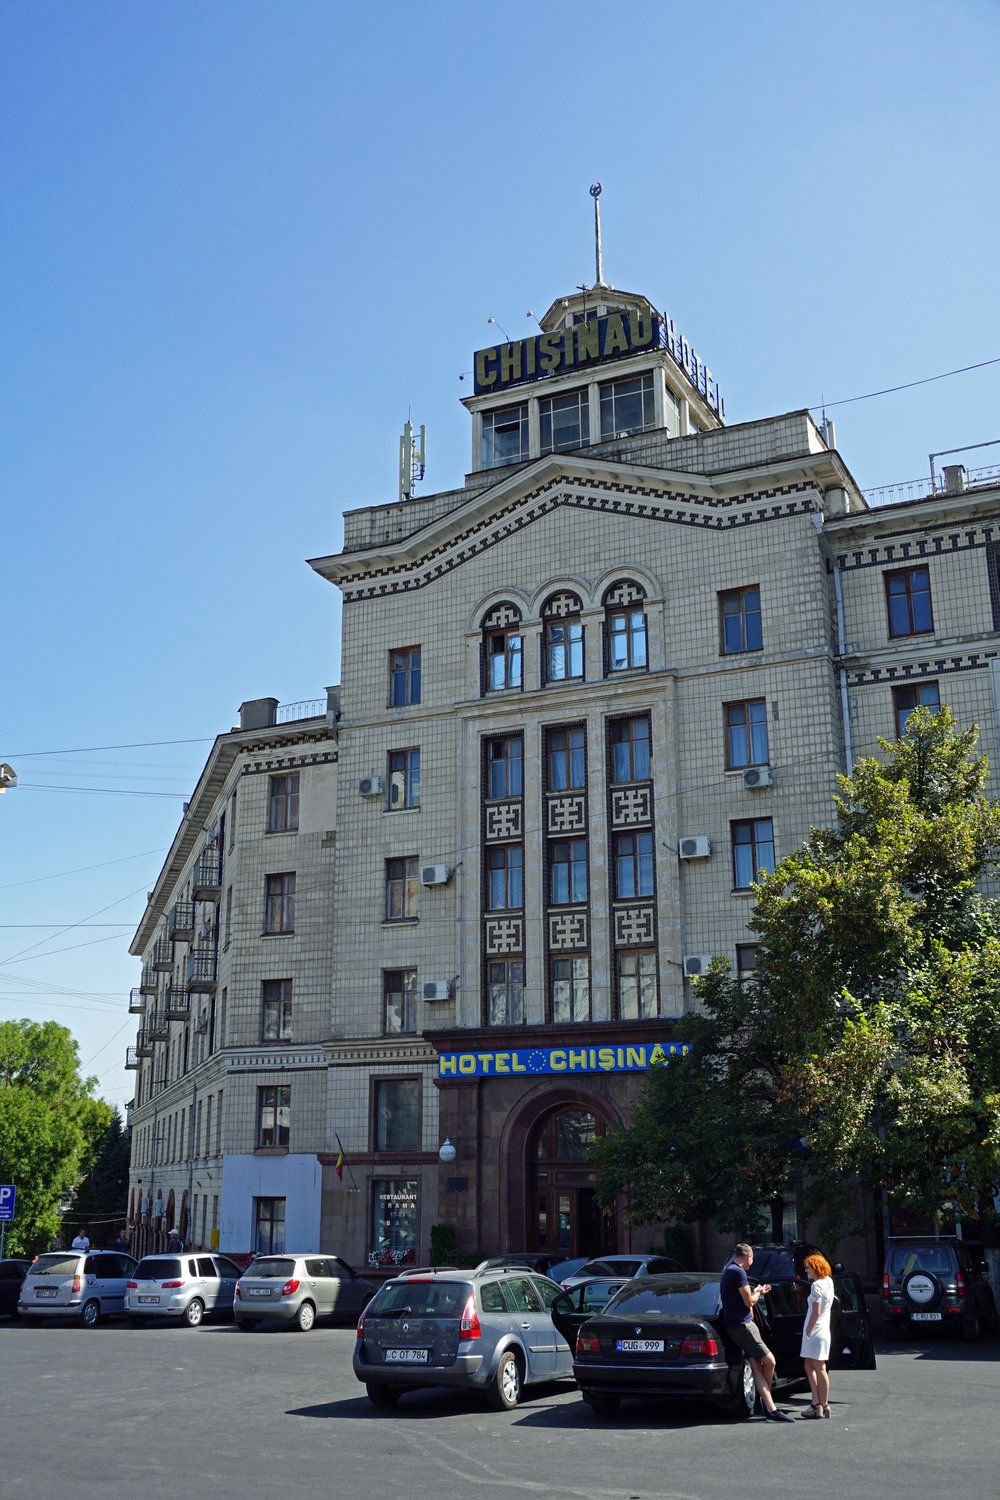 The old dame herself: the Hotel Chisinau